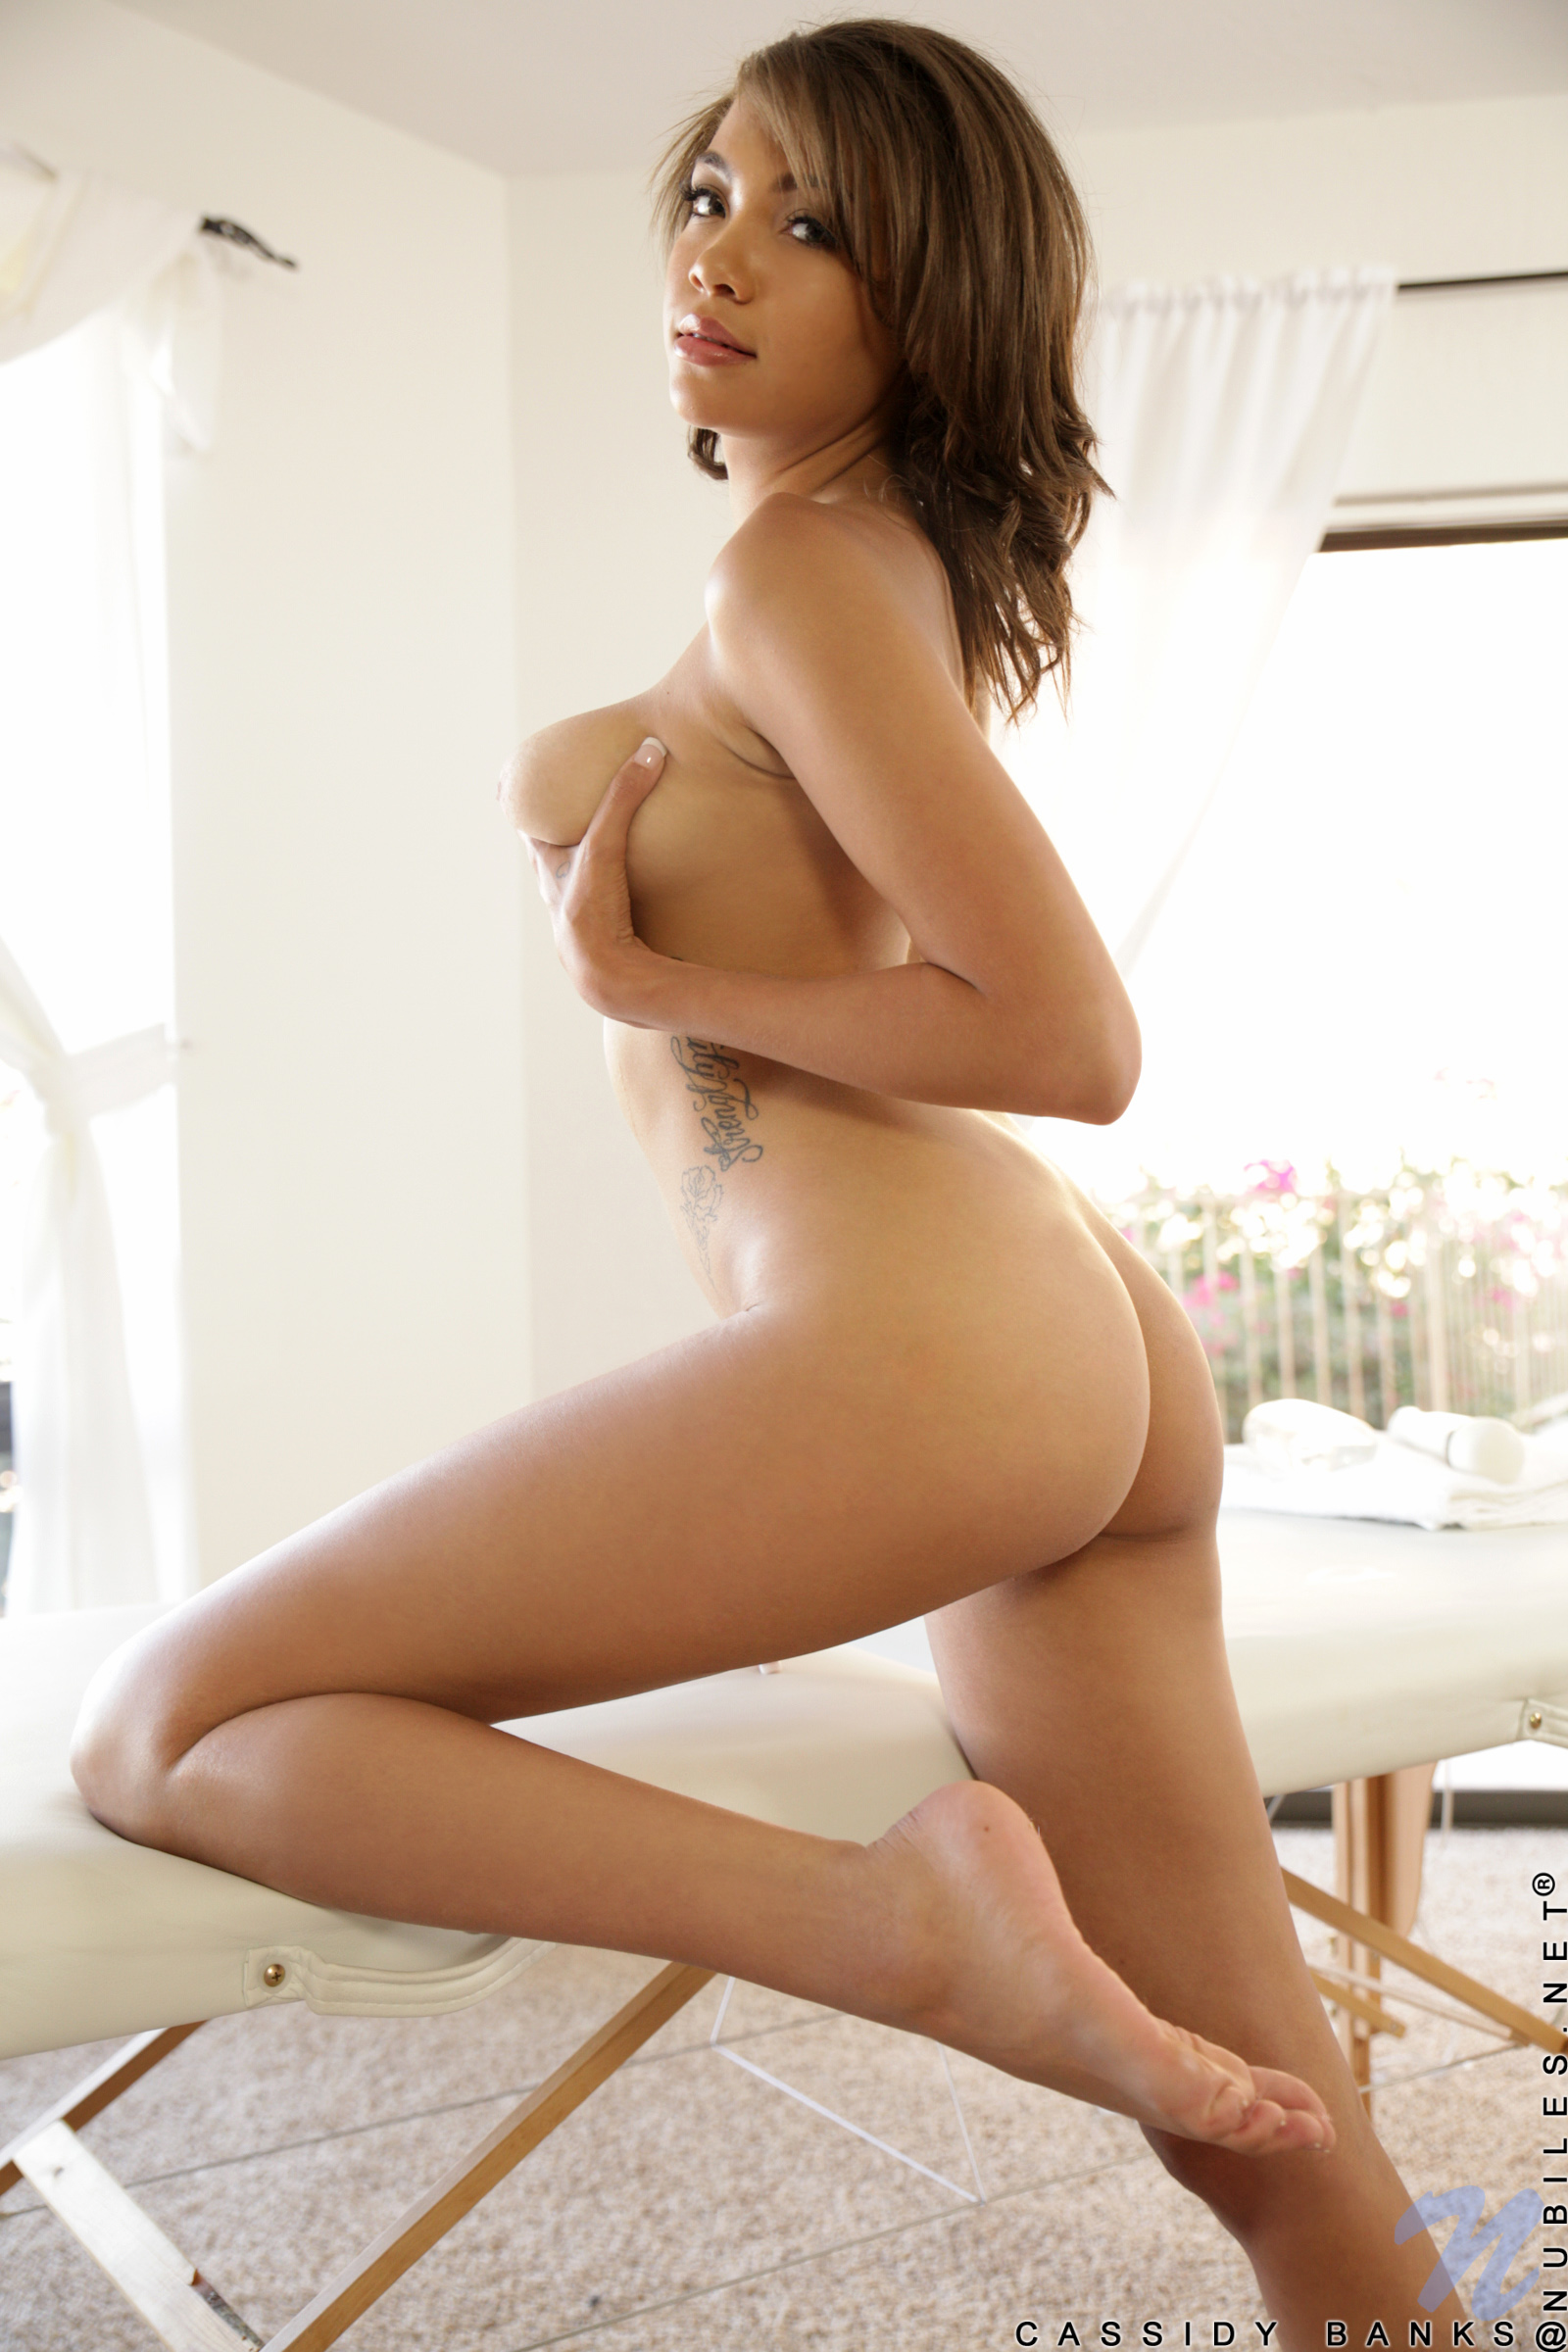 cassidy banks nude pics